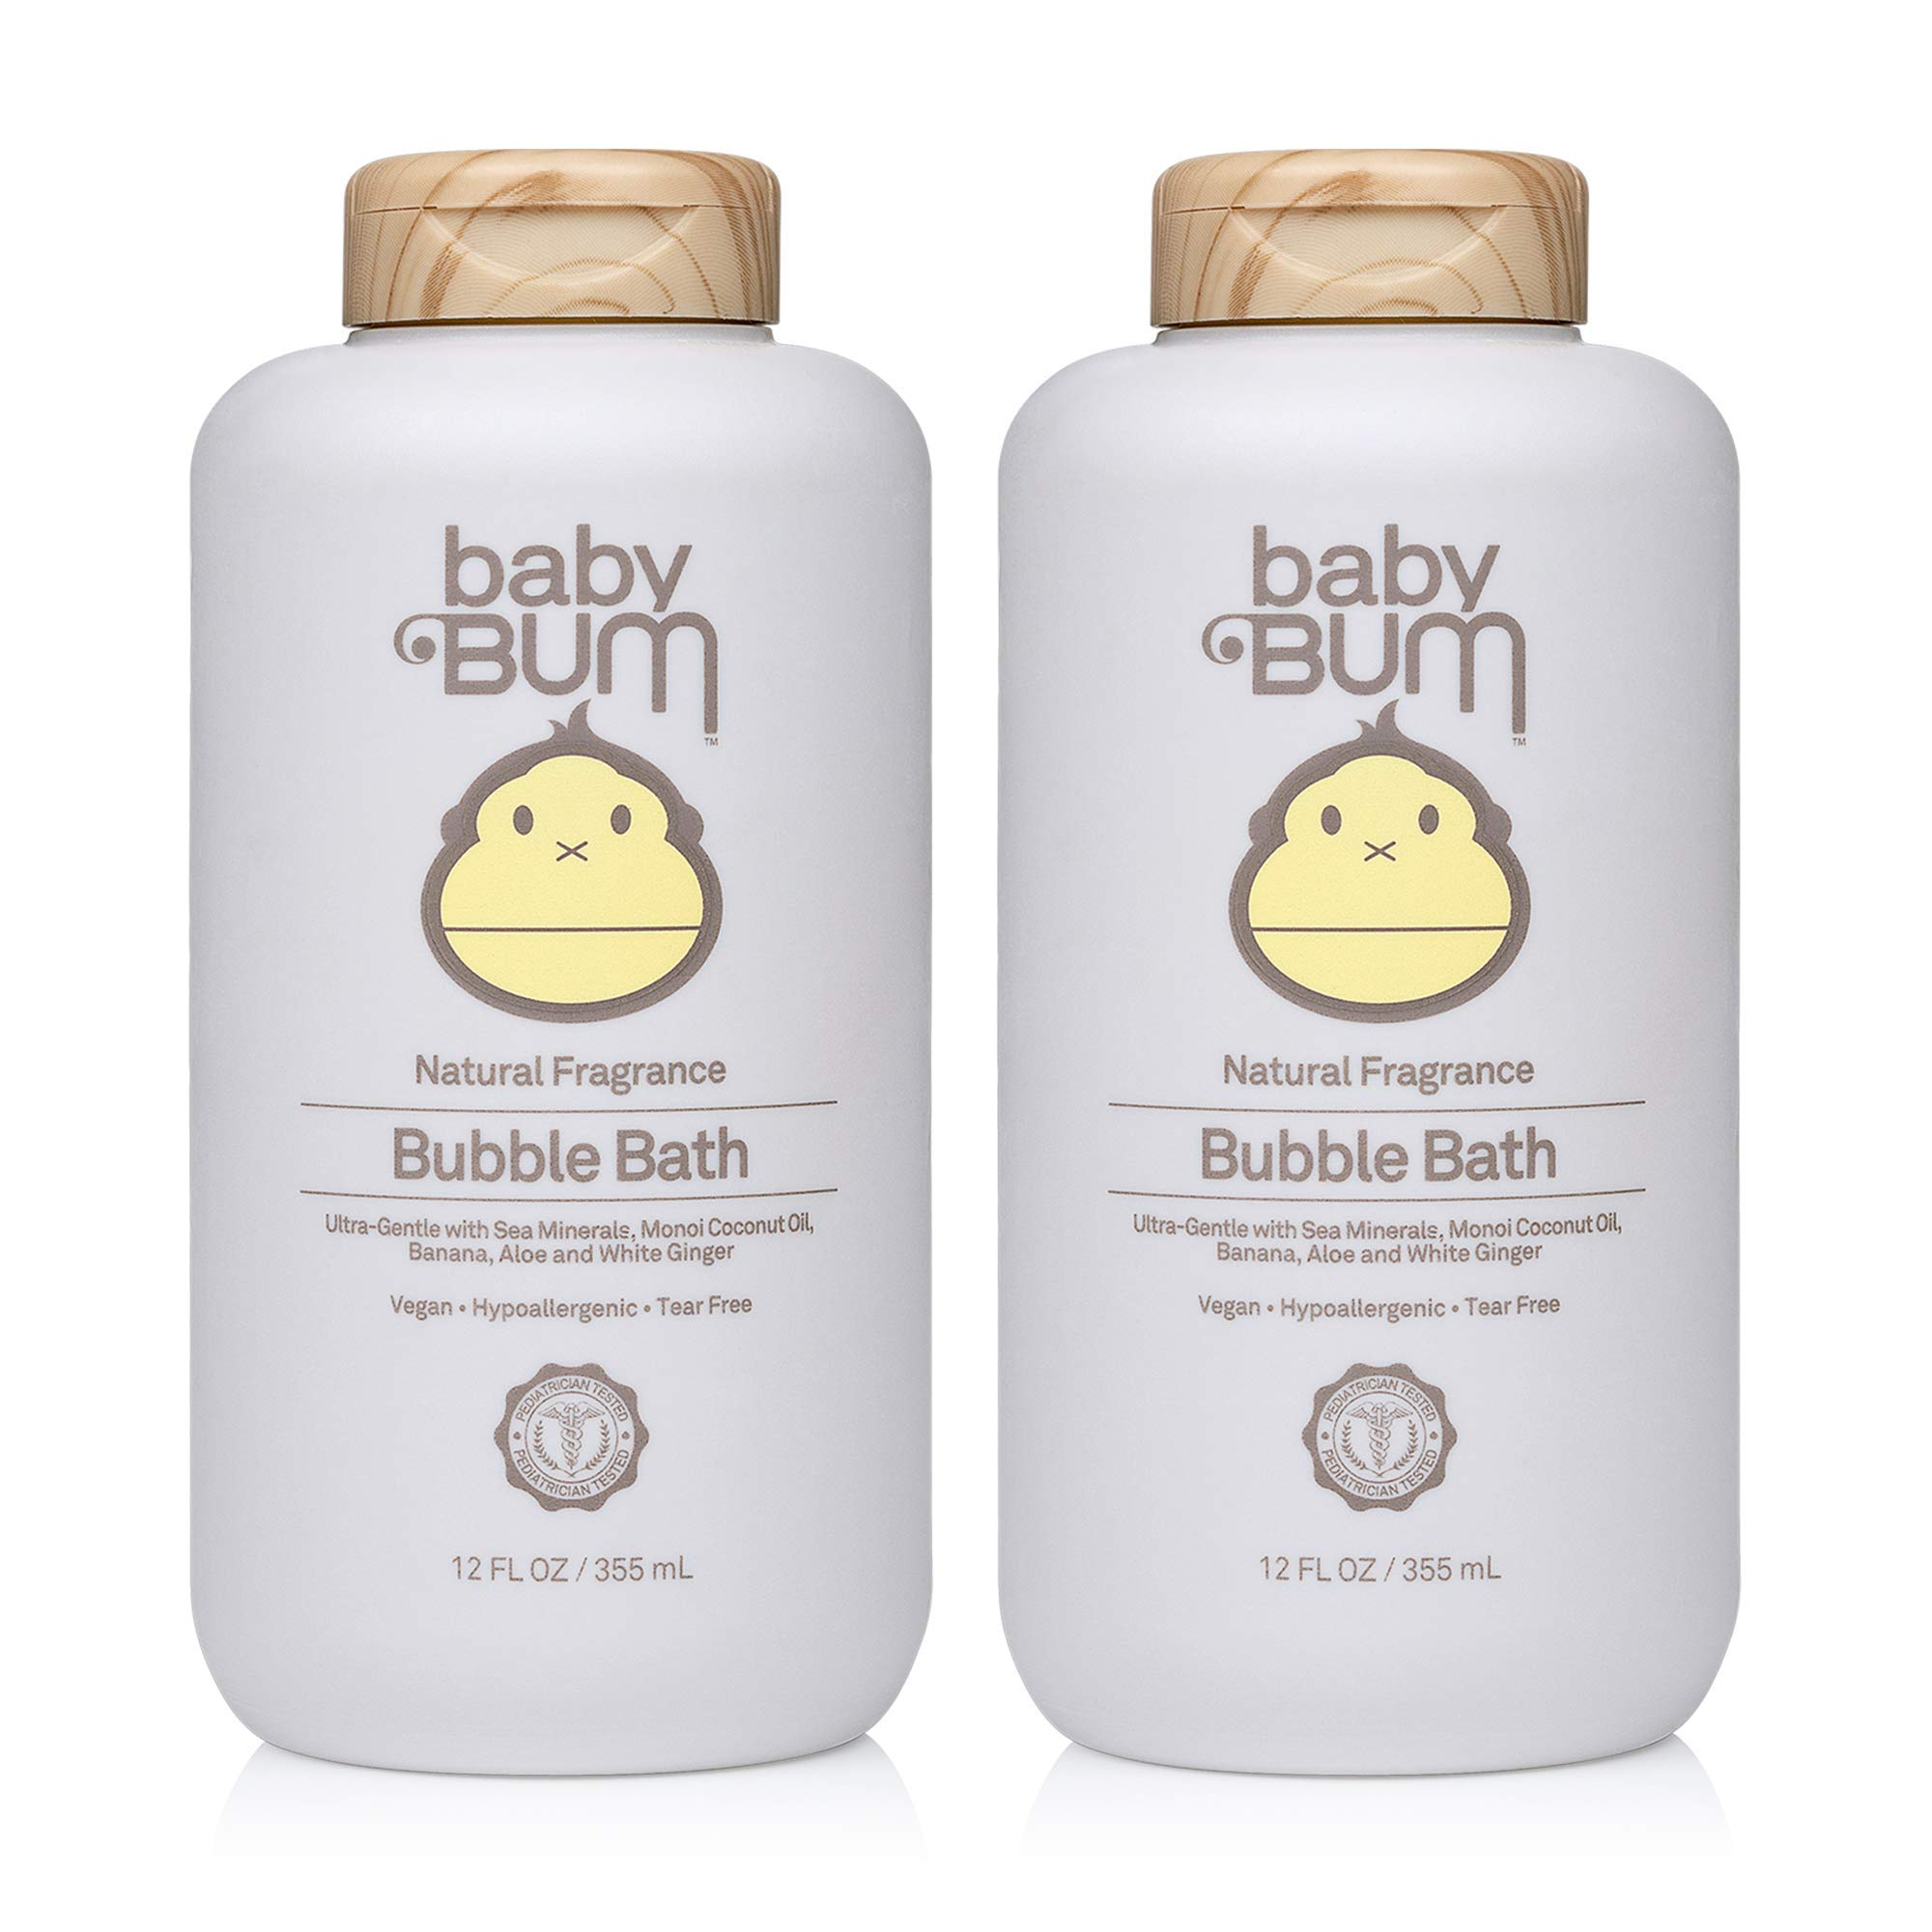 Baby Bum Bubble Bath Natural Fragrance Tear Free Soothing White Ginger for Sensitive Skin, 12 FL OZ (Pack of 2) by Baby Bum